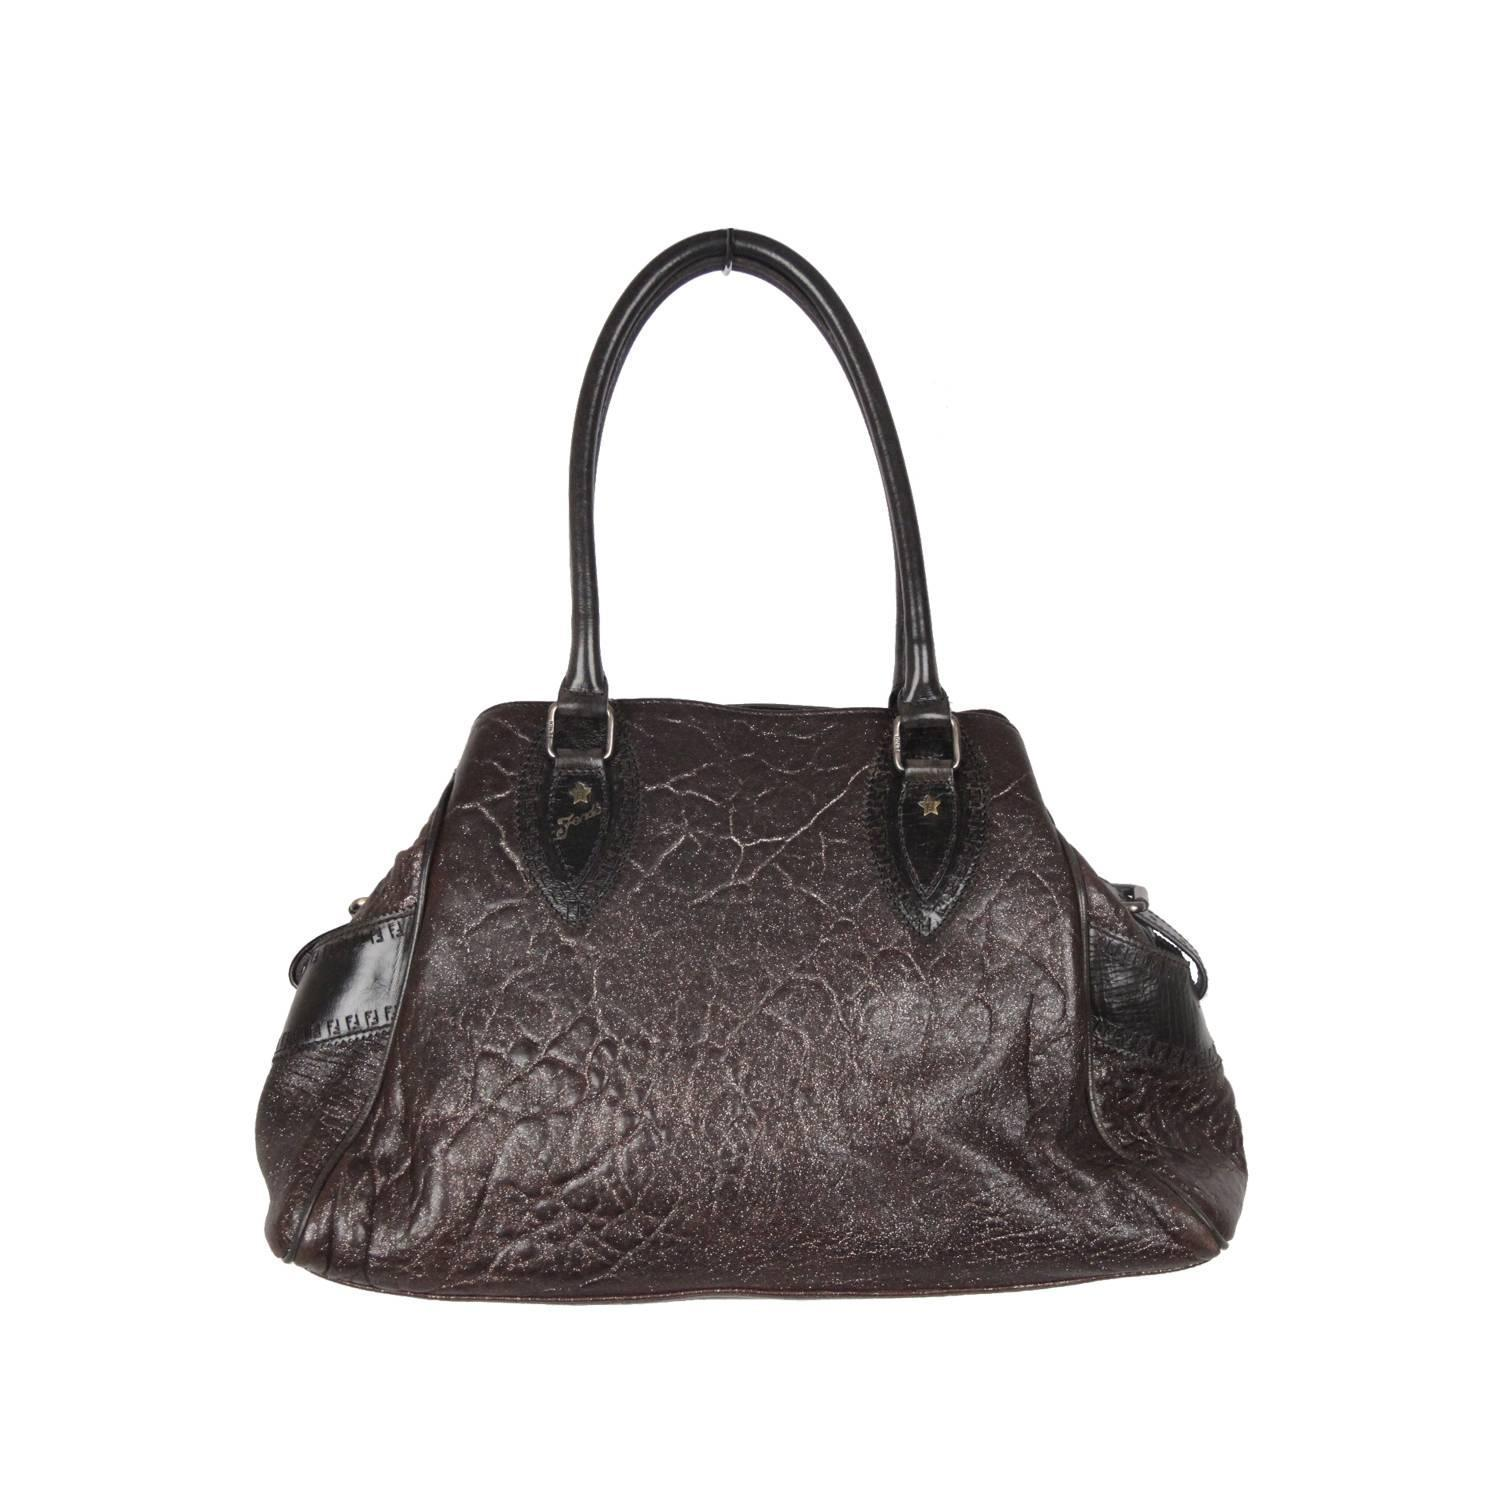 5e1749baa1a4 ... shop authentic fendi brown metallic leather bag de jour bag tote  satchel for sale at 1stdibs ...